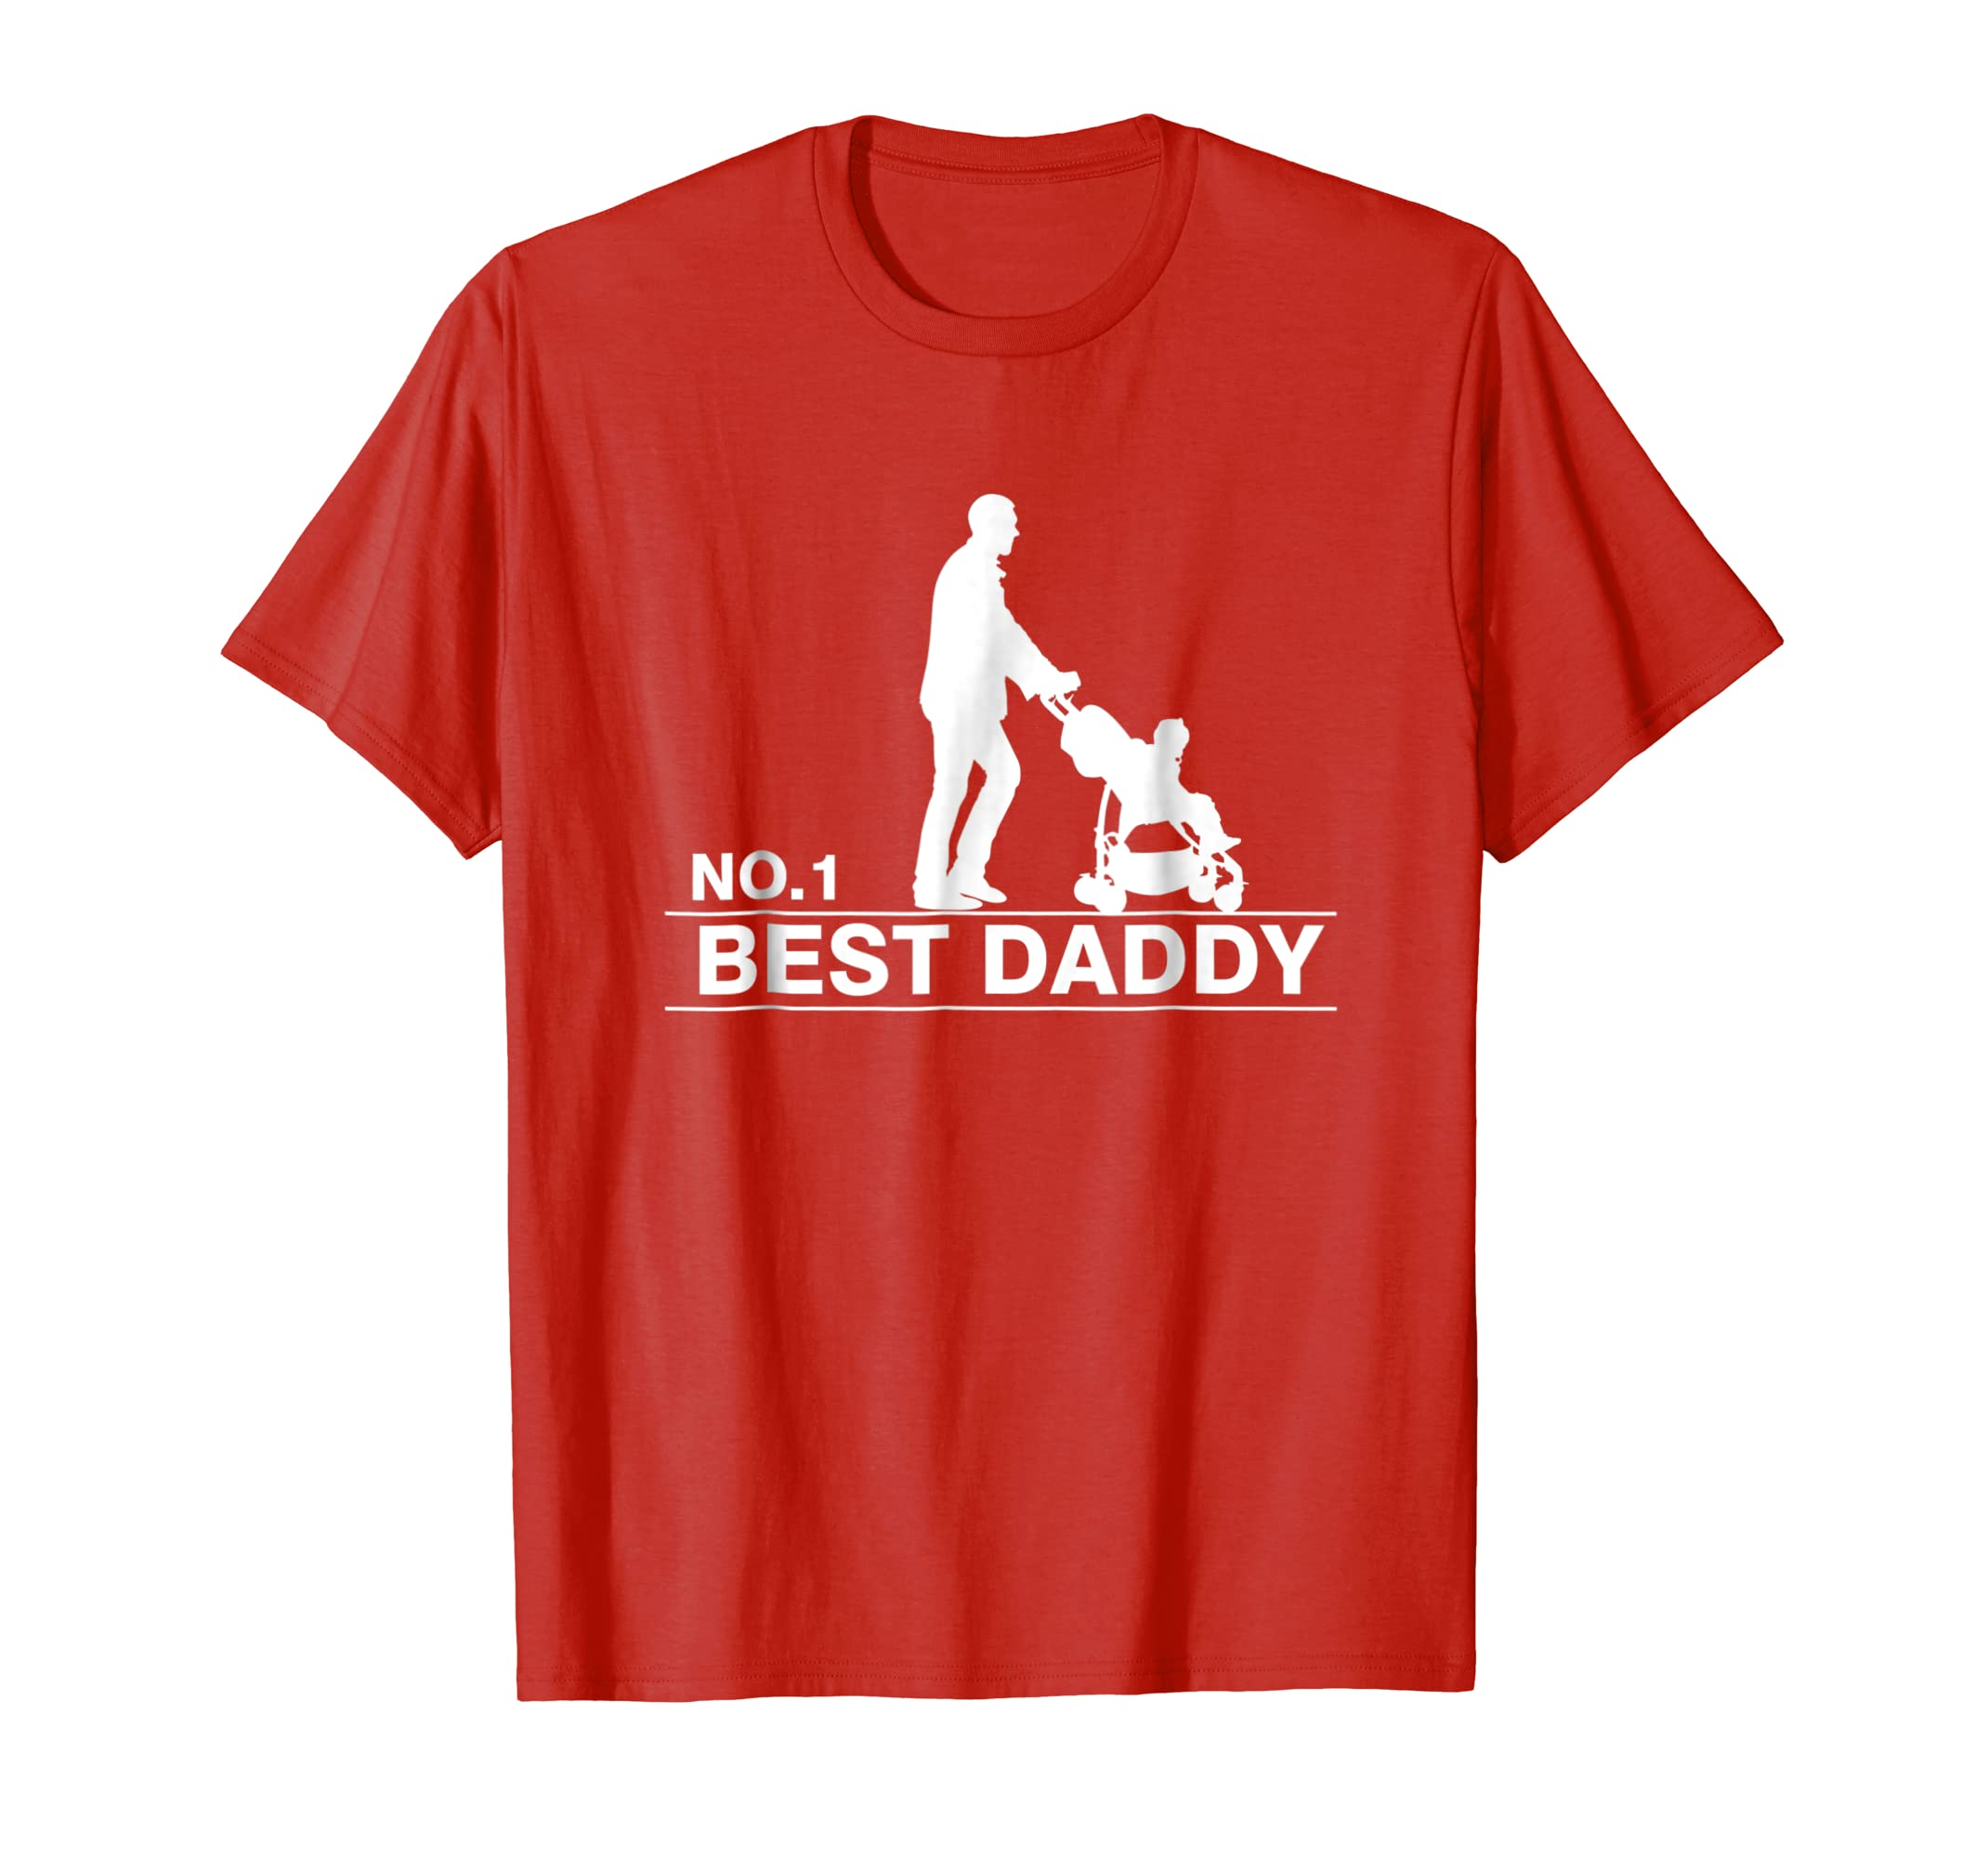 dba50a2e No.1 Best Dad T-Shirt Funny Cool Gift For Father's Day Idea- TPT - Best  Selling T-Shirts